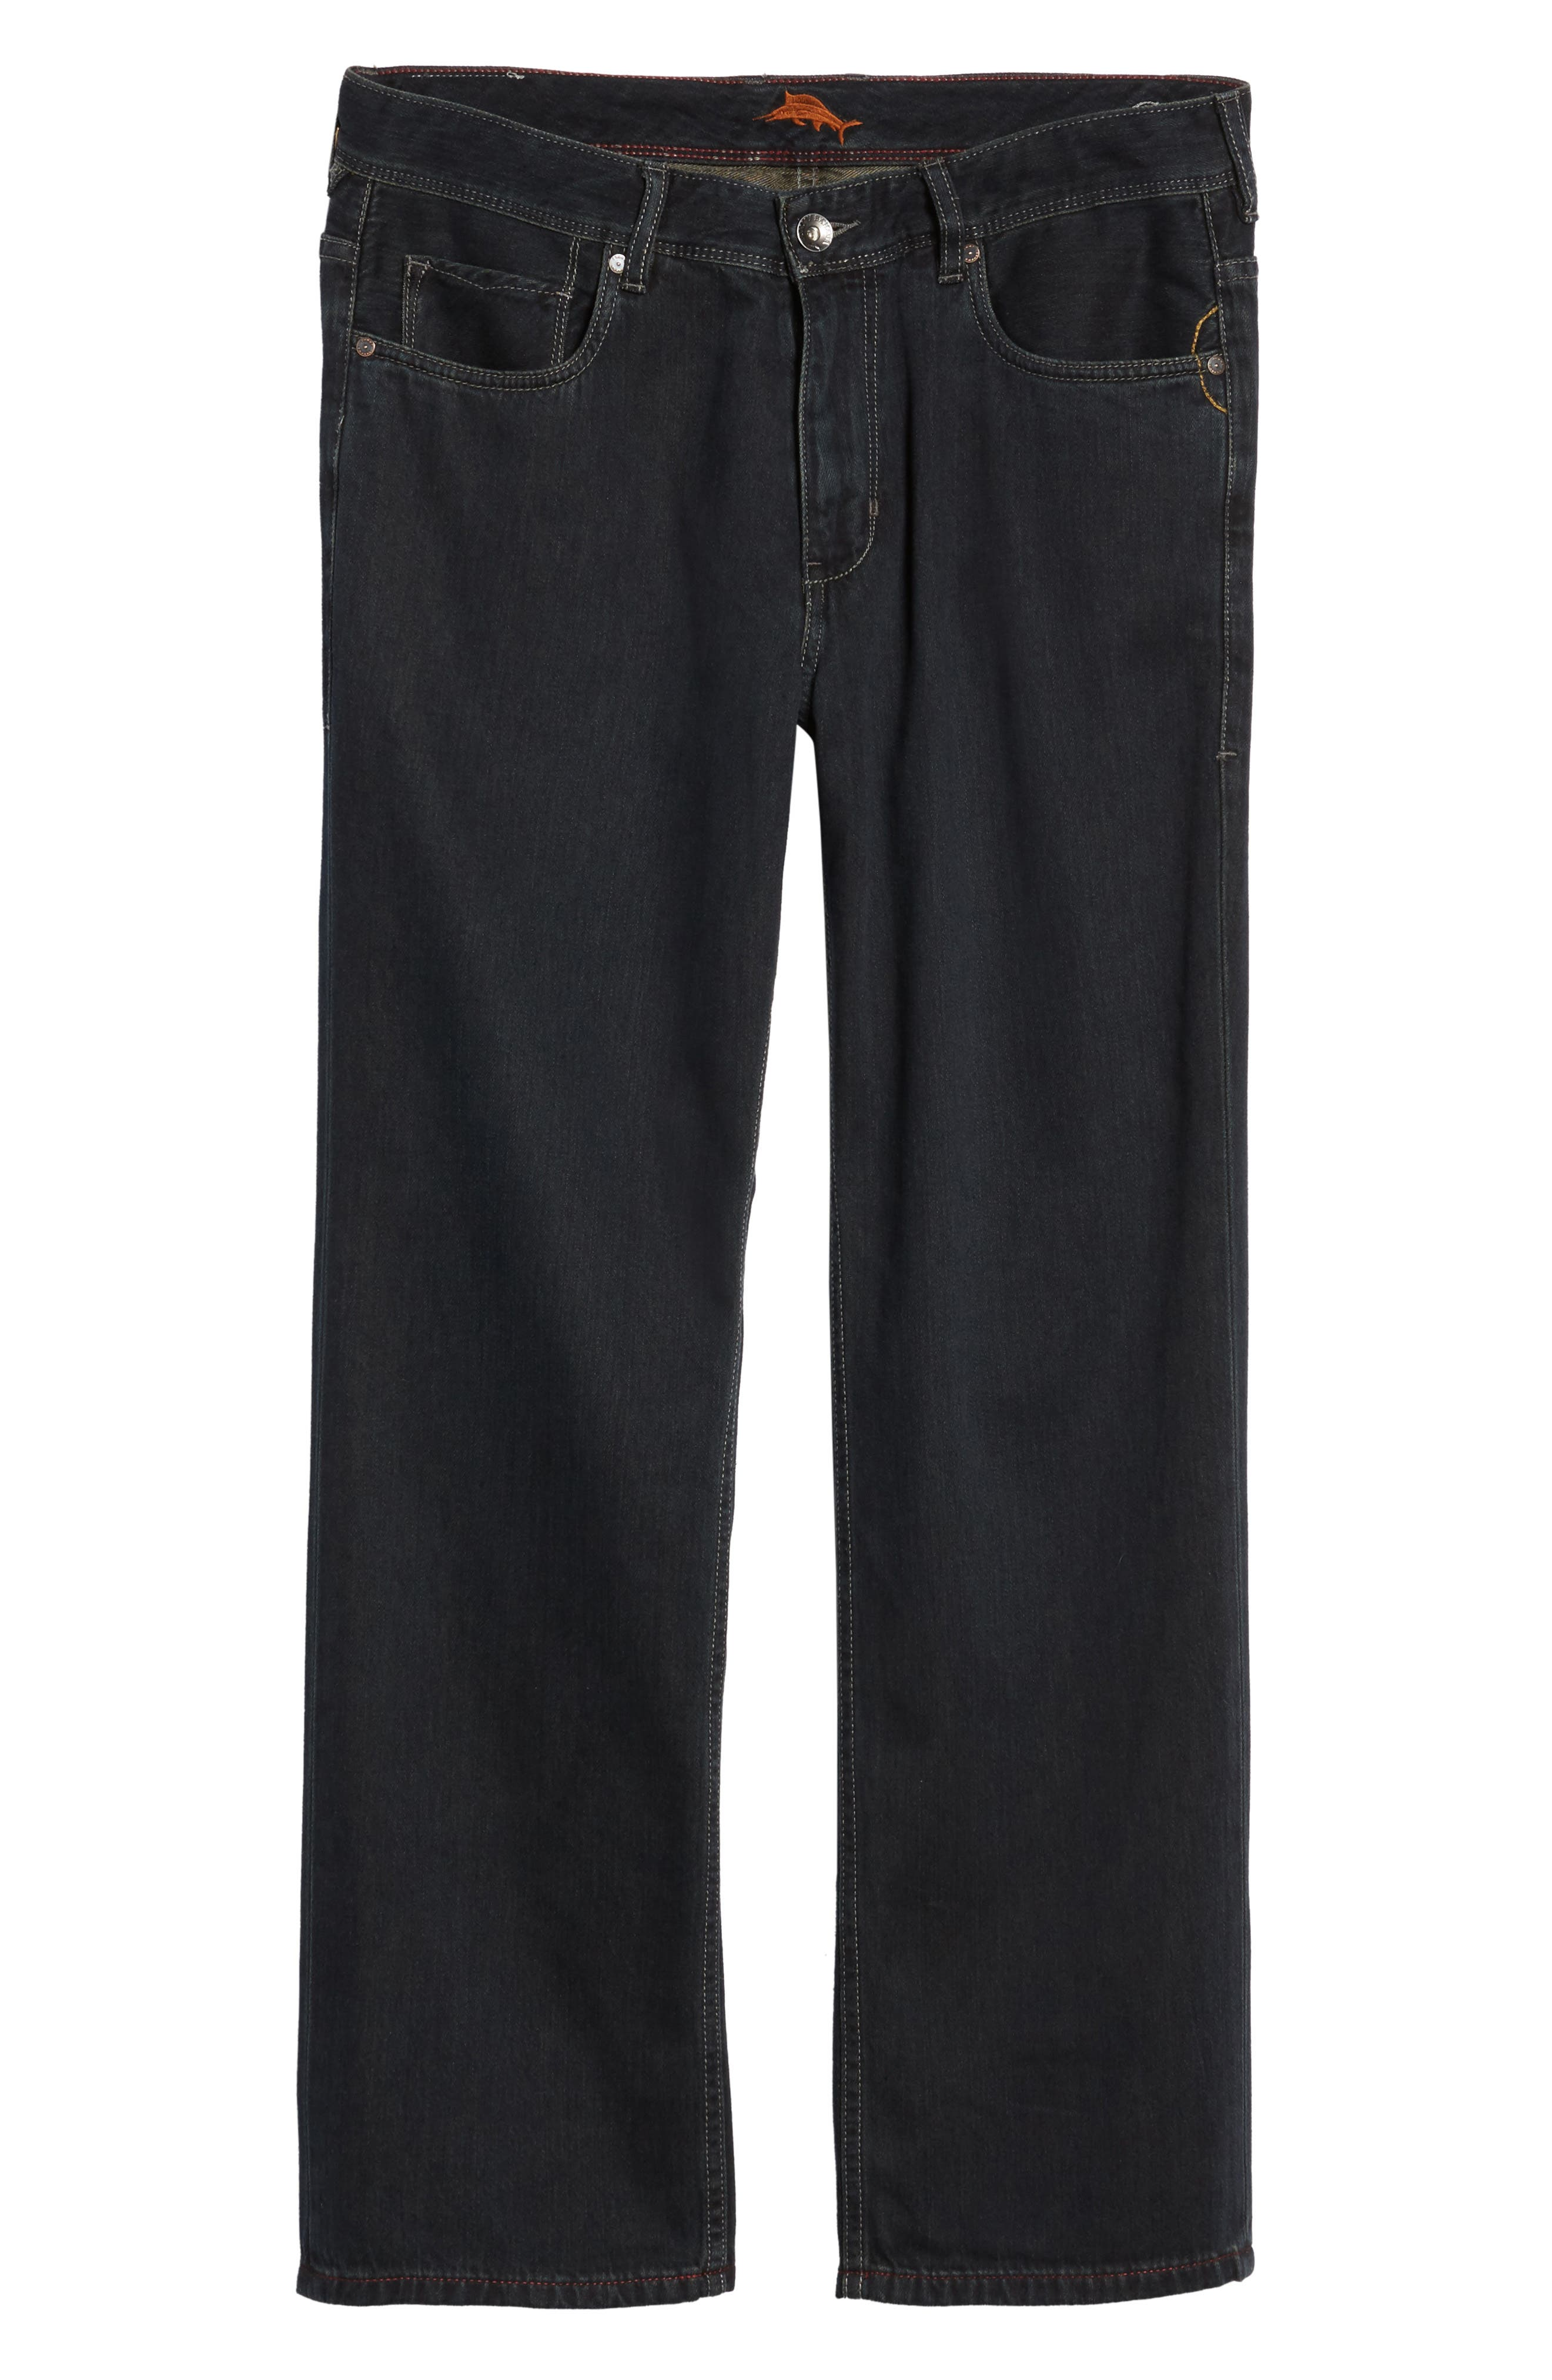 'Caymen' Relaxed Fit Straight Leg Jeans,                         Main,                         color, Black Overdye